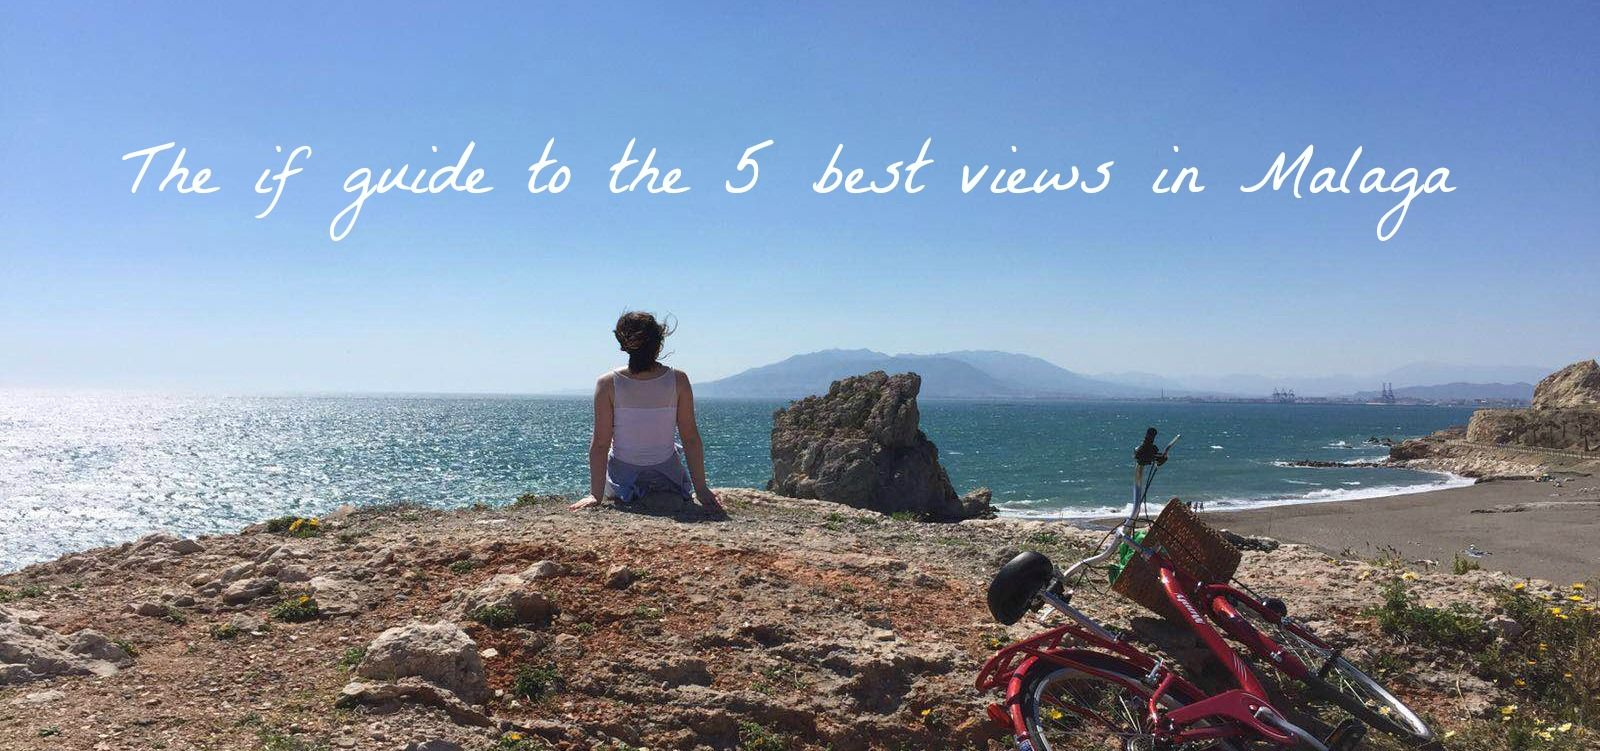 Looking to see Malaga in all it's glory? I've just shared the 5 best views of Malaga on imperfectlyfree.com